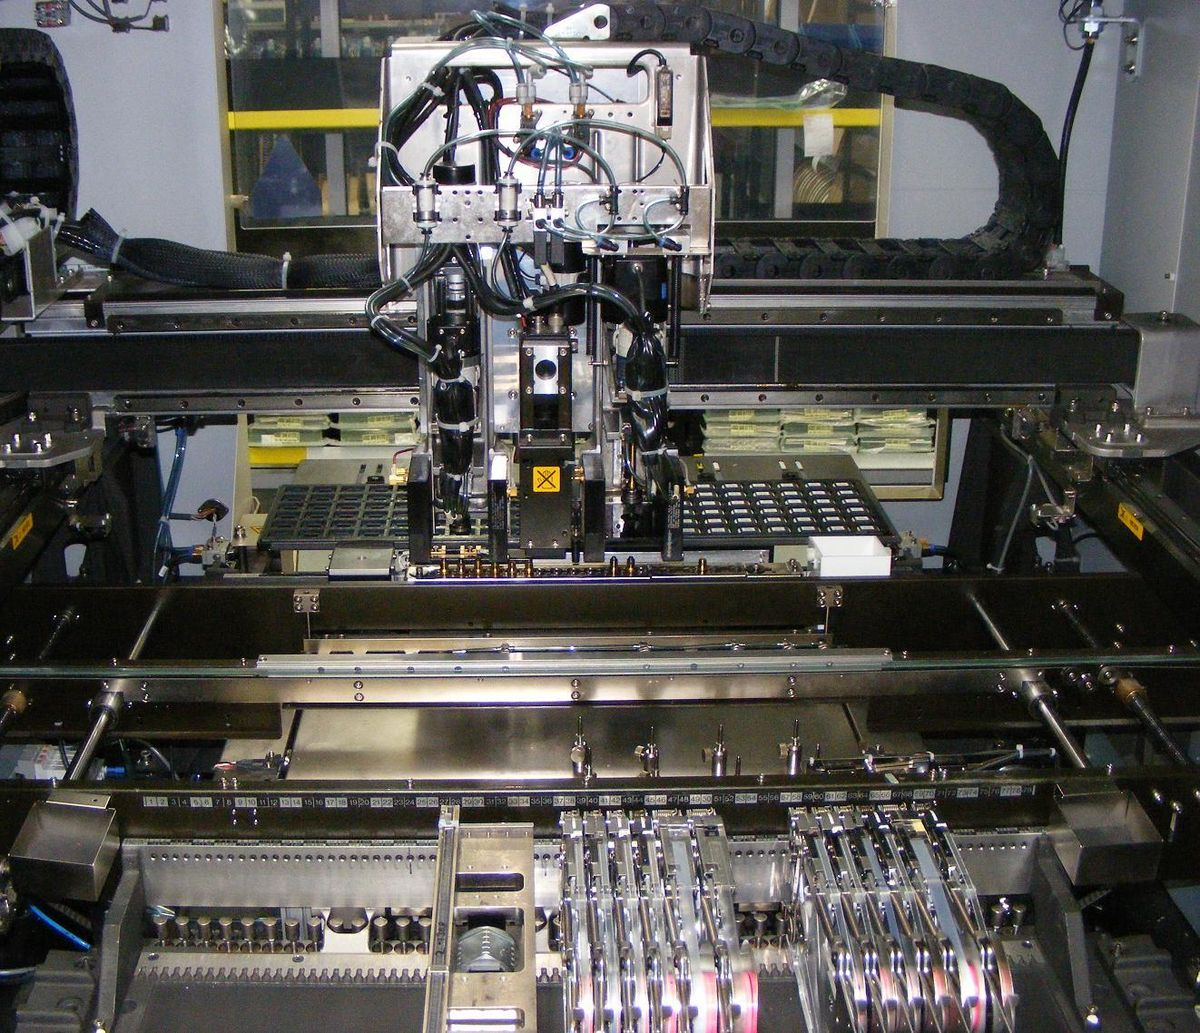 Smt Placement Equipment Wikipedia More Printed Circuit Boards We Buy Pictures Or Back To General E